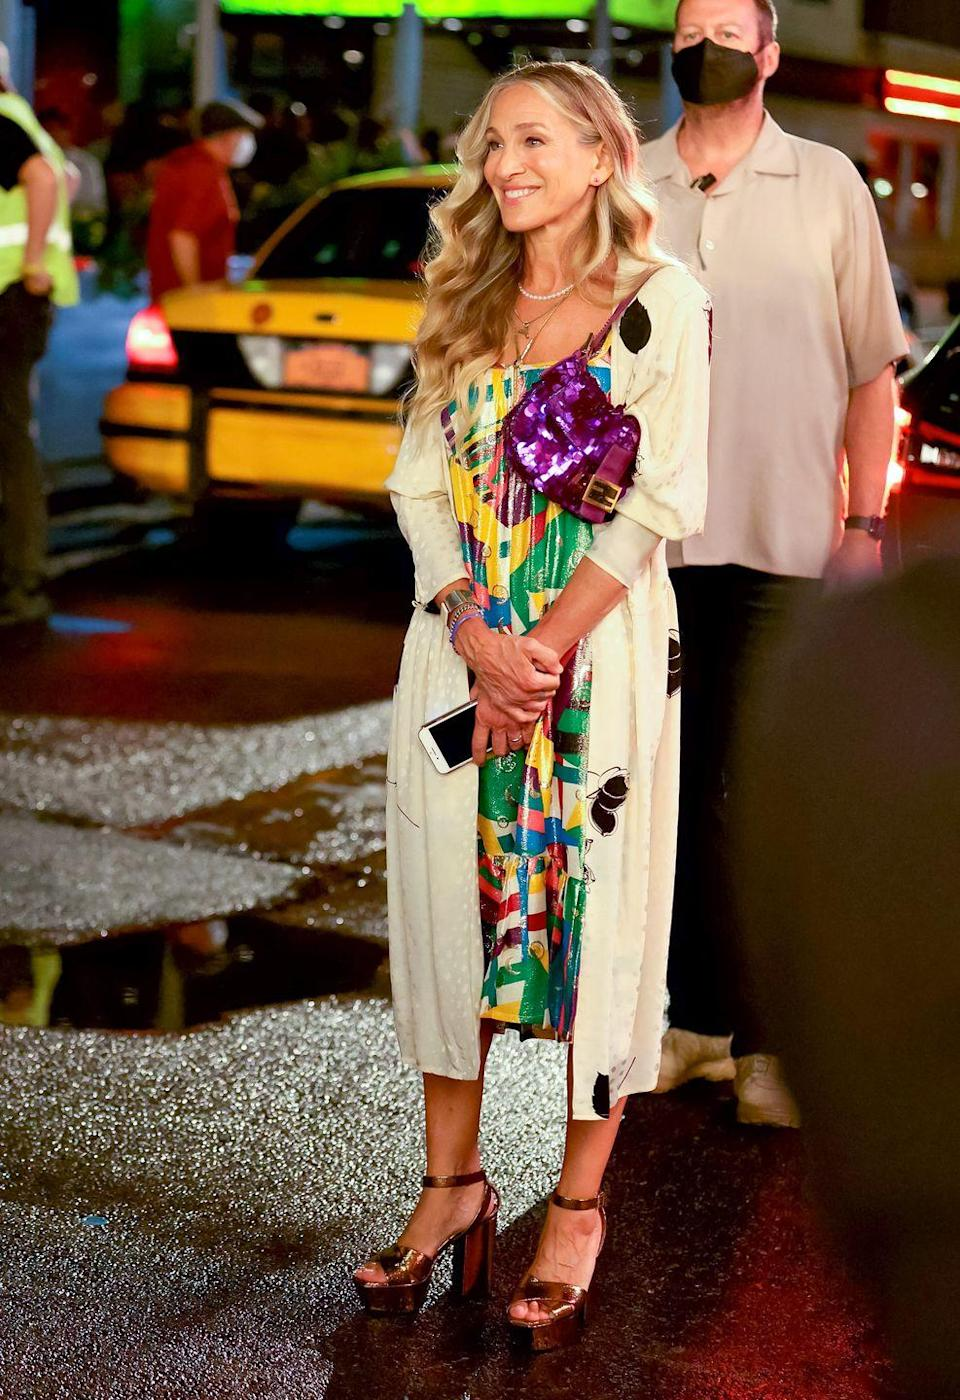 """<p>The cast were seen filming a glamorous night out in New York City, with Carrie dressed in a multi-coloured dress with a delicate coat and metallic gold Saint Laurent platform heels.</p><p><a class=""""link rapid-noclick-resp"""" href=""""https://go.redirectingat.com?id=127X1599956&url=https%3A%2F%2Fwww.net-a-porter.com%2Fen-gb%2Fshop%2Fshoes%3Fcm_sp%3Dtopnav-_-shoes-_-topbar%26facet%3Dbrand_1442&sref=https%3A%2F%2Fwww.harpersbazaar.com%2Fuk%2Ffashion%2Fwhat-to-wear%2Fg37057394%2Fand-just-like-that-style-fashion%2F"""" rel=""""nofollow noopener"""" target=""""_blank"""" data-ylk=""""slk:SHOP MORE SAINT LAURENT SHOES"""">SHOP MORE SAINT LAURENT SHOES</a></p>"""